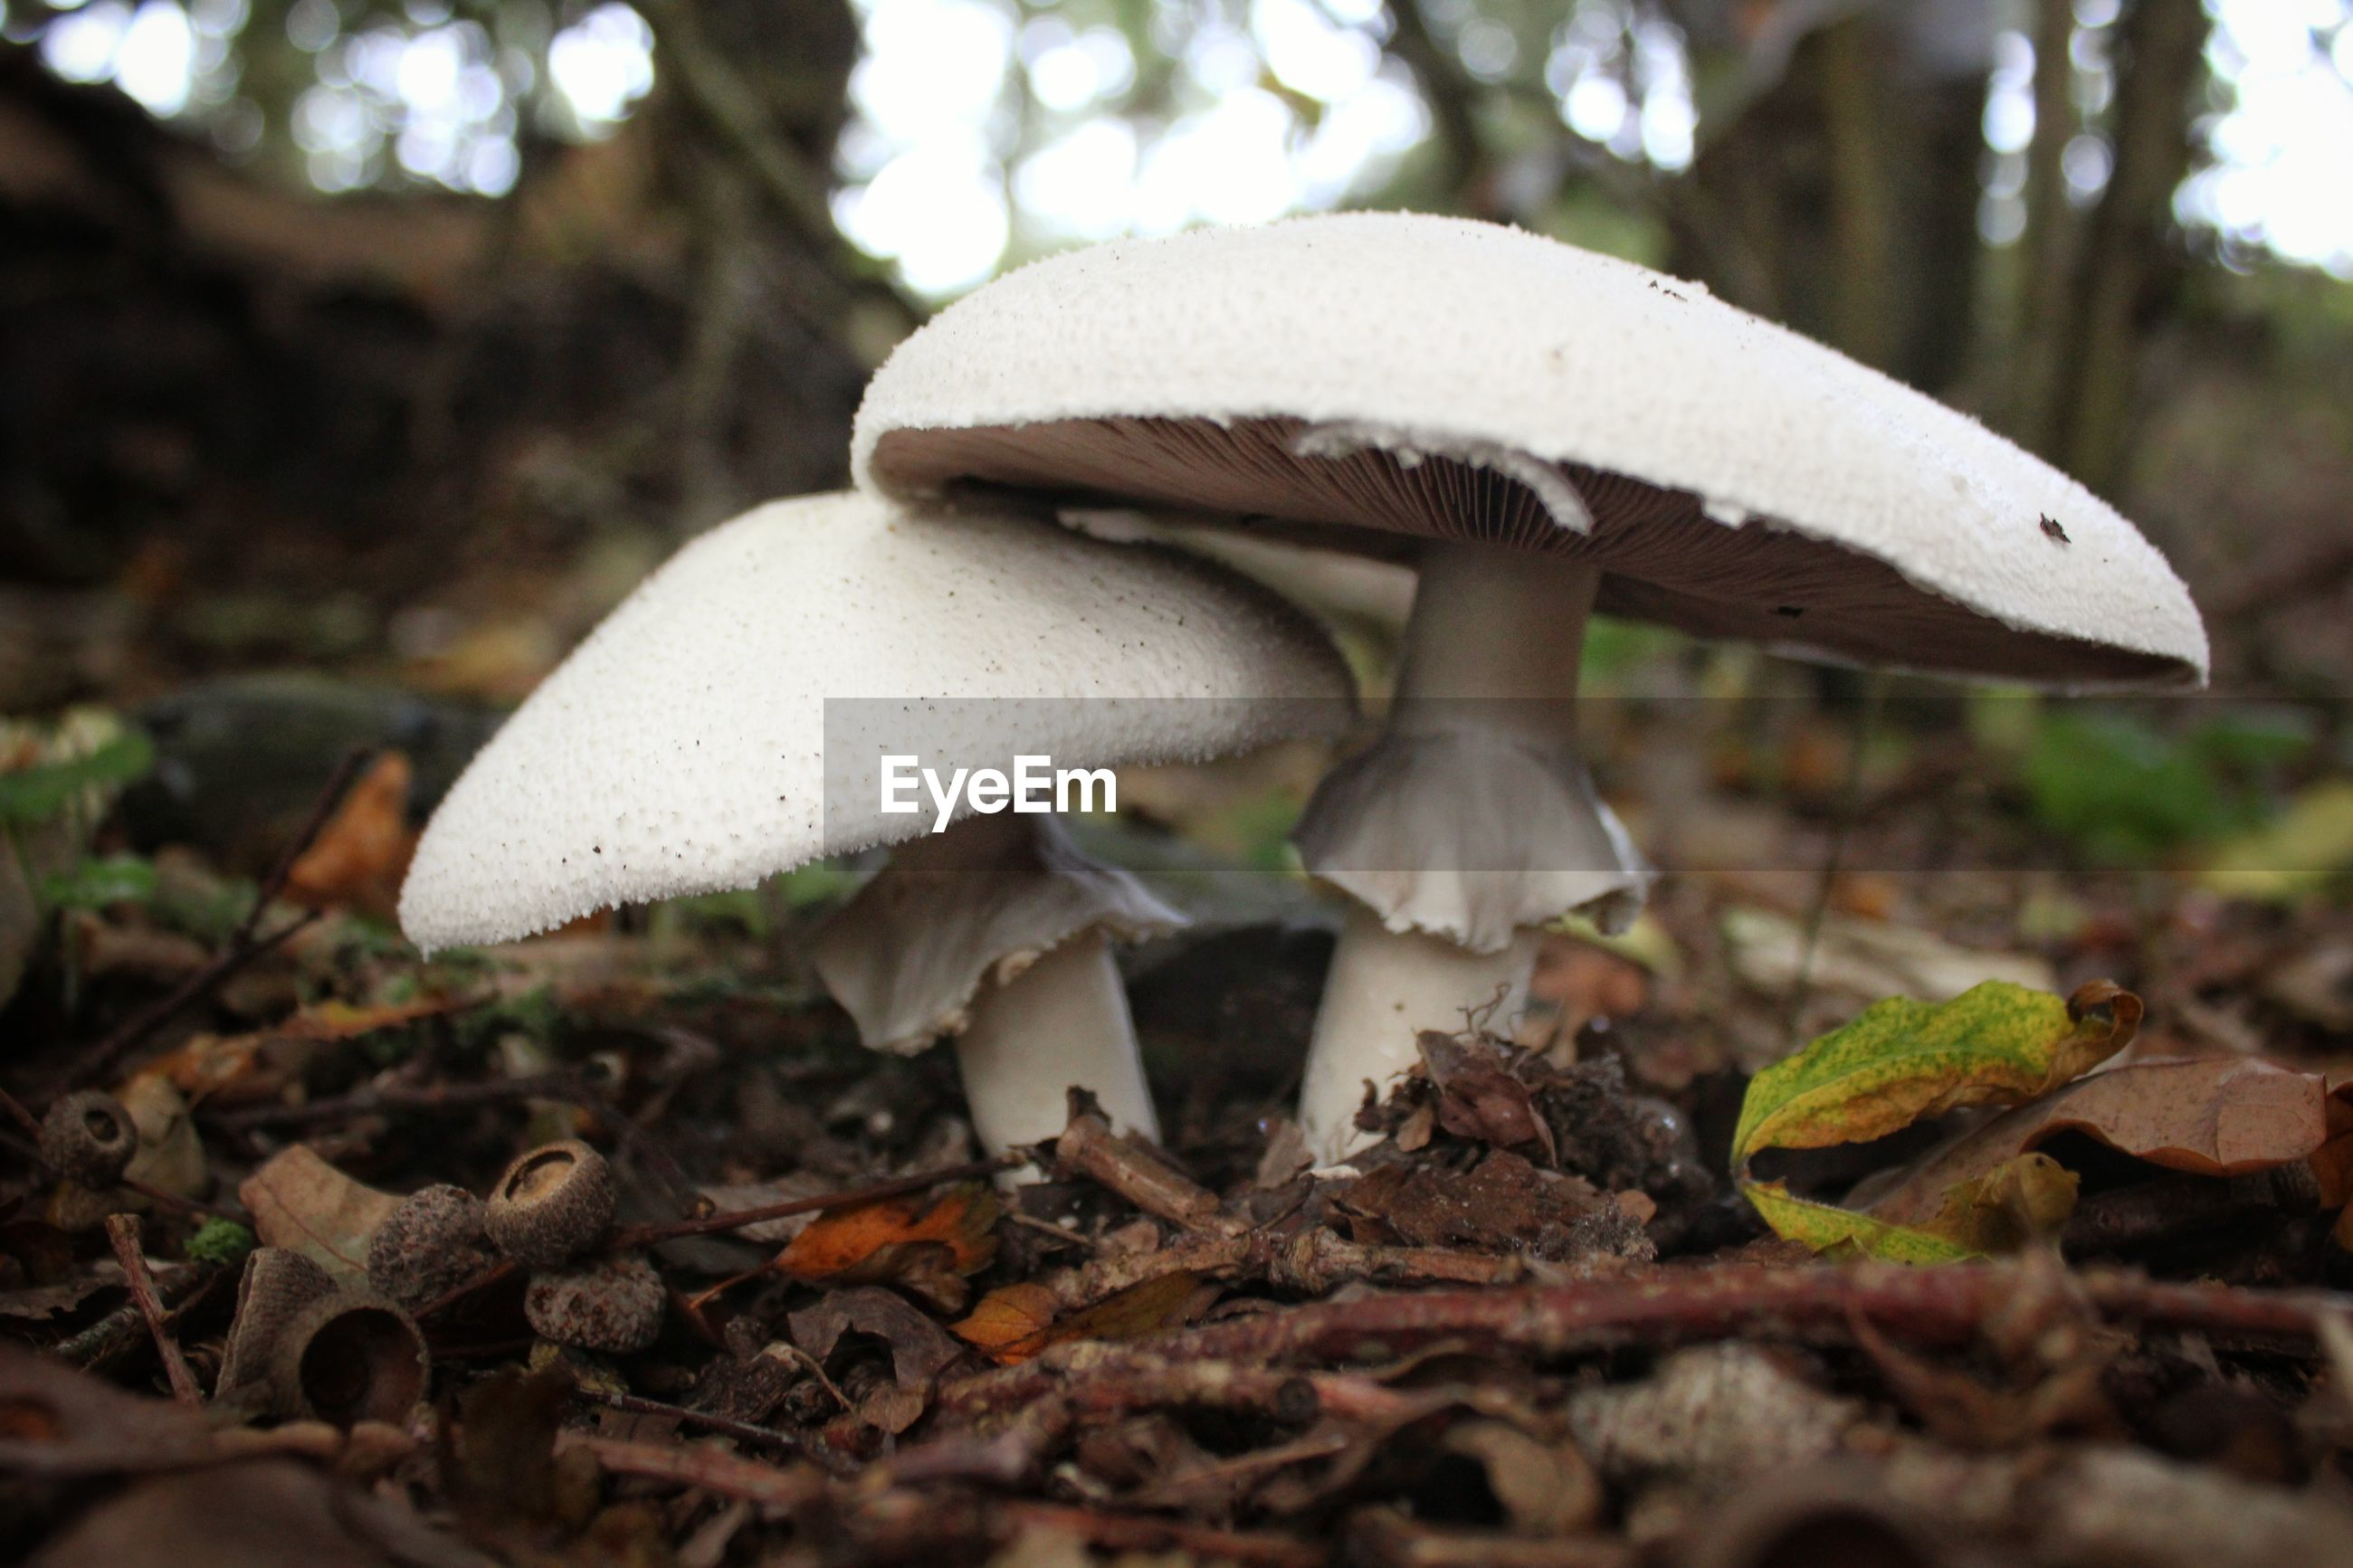 mushroom, fungus, vegetable, food, growth, land, plant, toadstool, close-up, nature, no people, tree, day, field, focus on foreground, forest, edible mushroom, beauty in nature, food and drink, fly agaric mushroom, outdoors, surface level